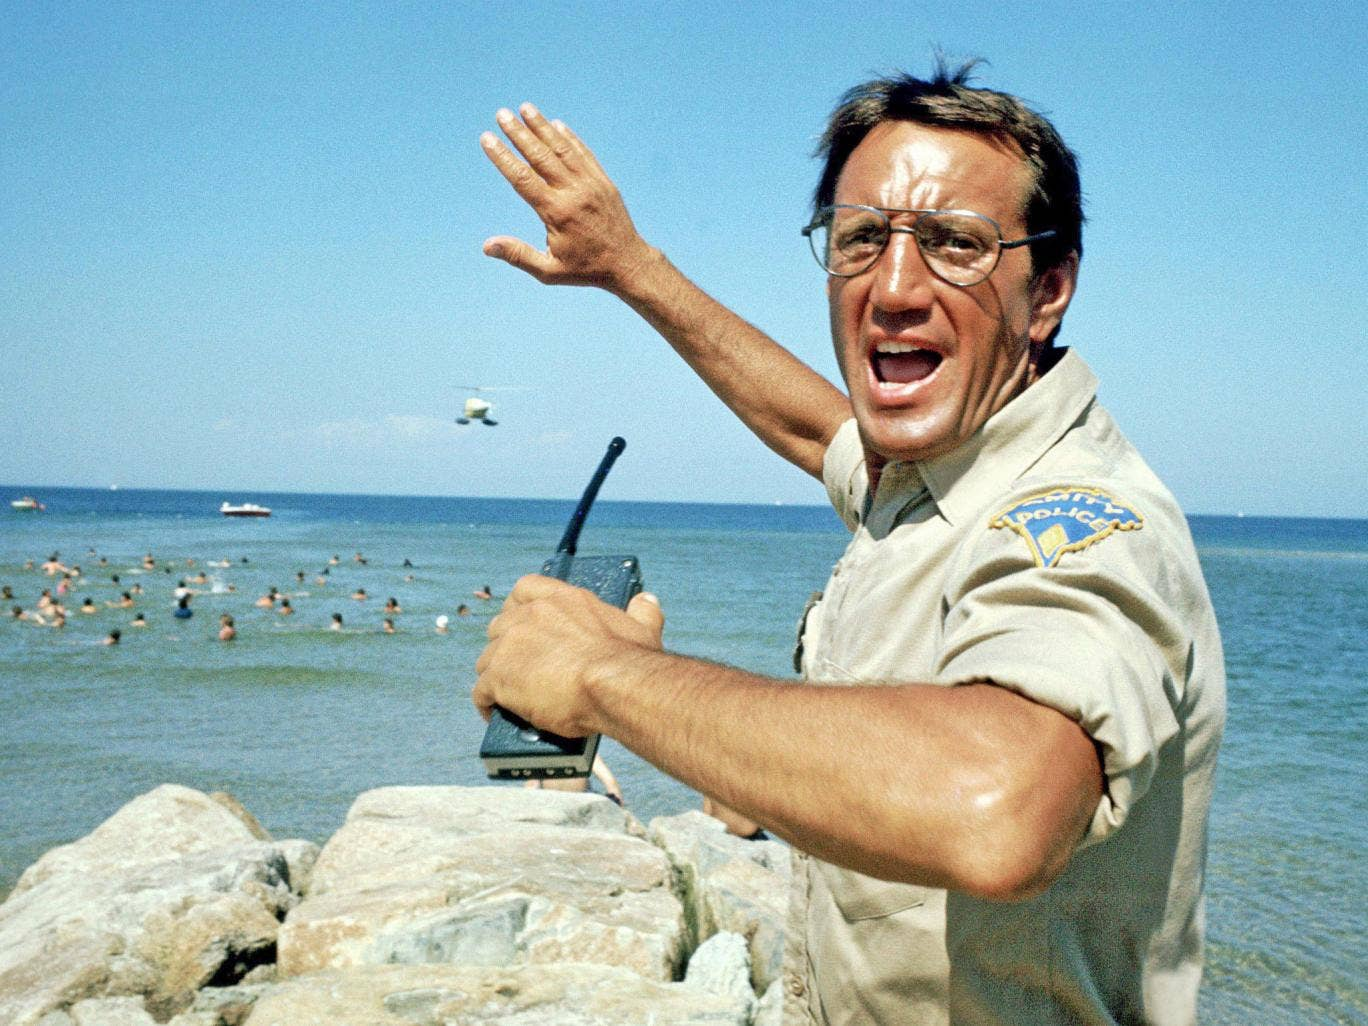 'Jaws' follows the classic 'monster' narrative archetype